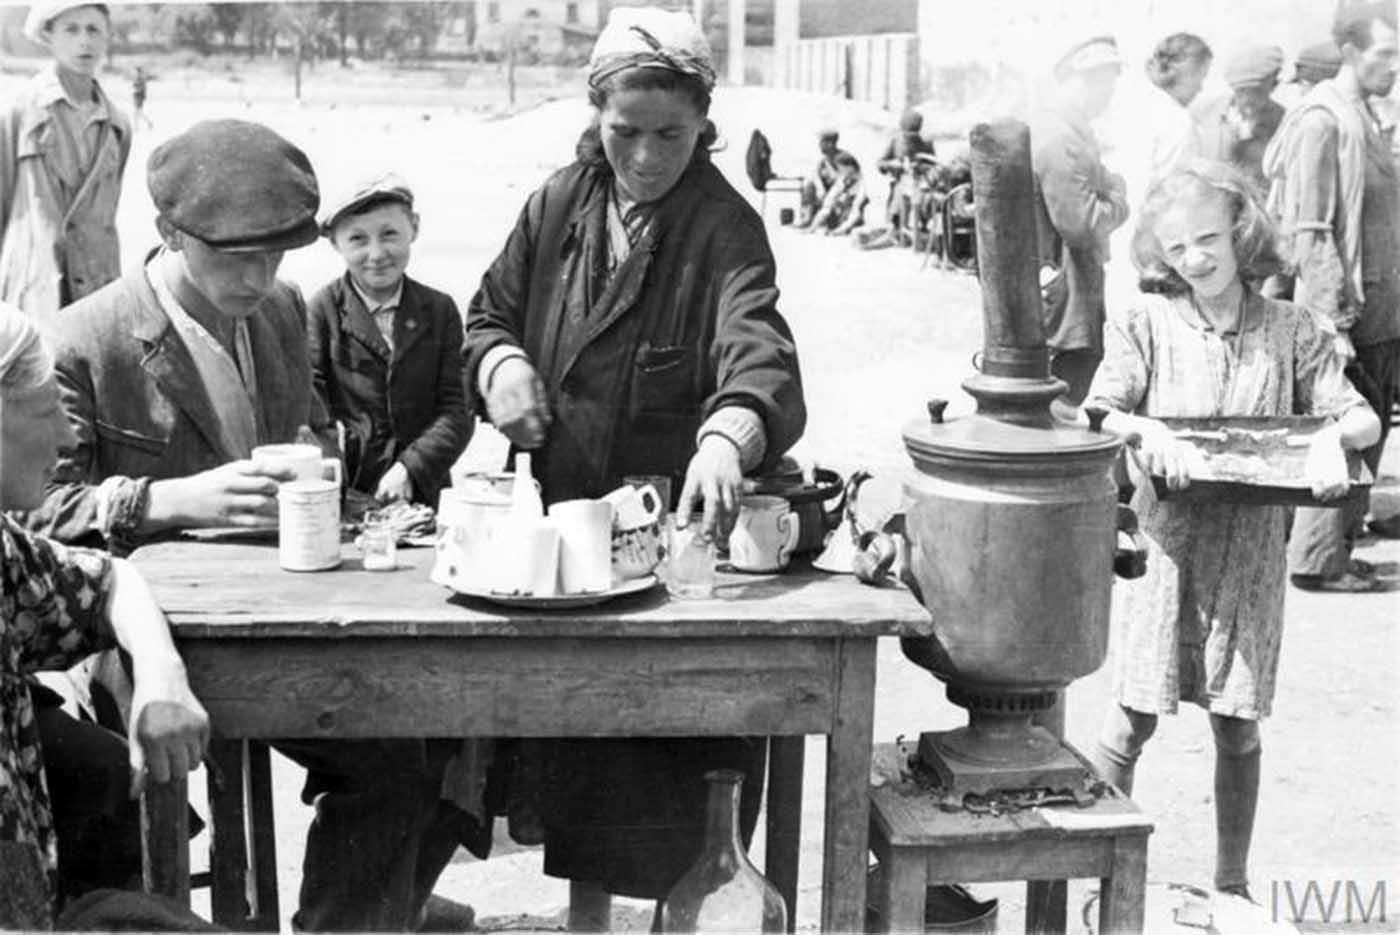 A female tea seller serving hot drinks to customers in a makeshift cafe in a street market in the ghetto.